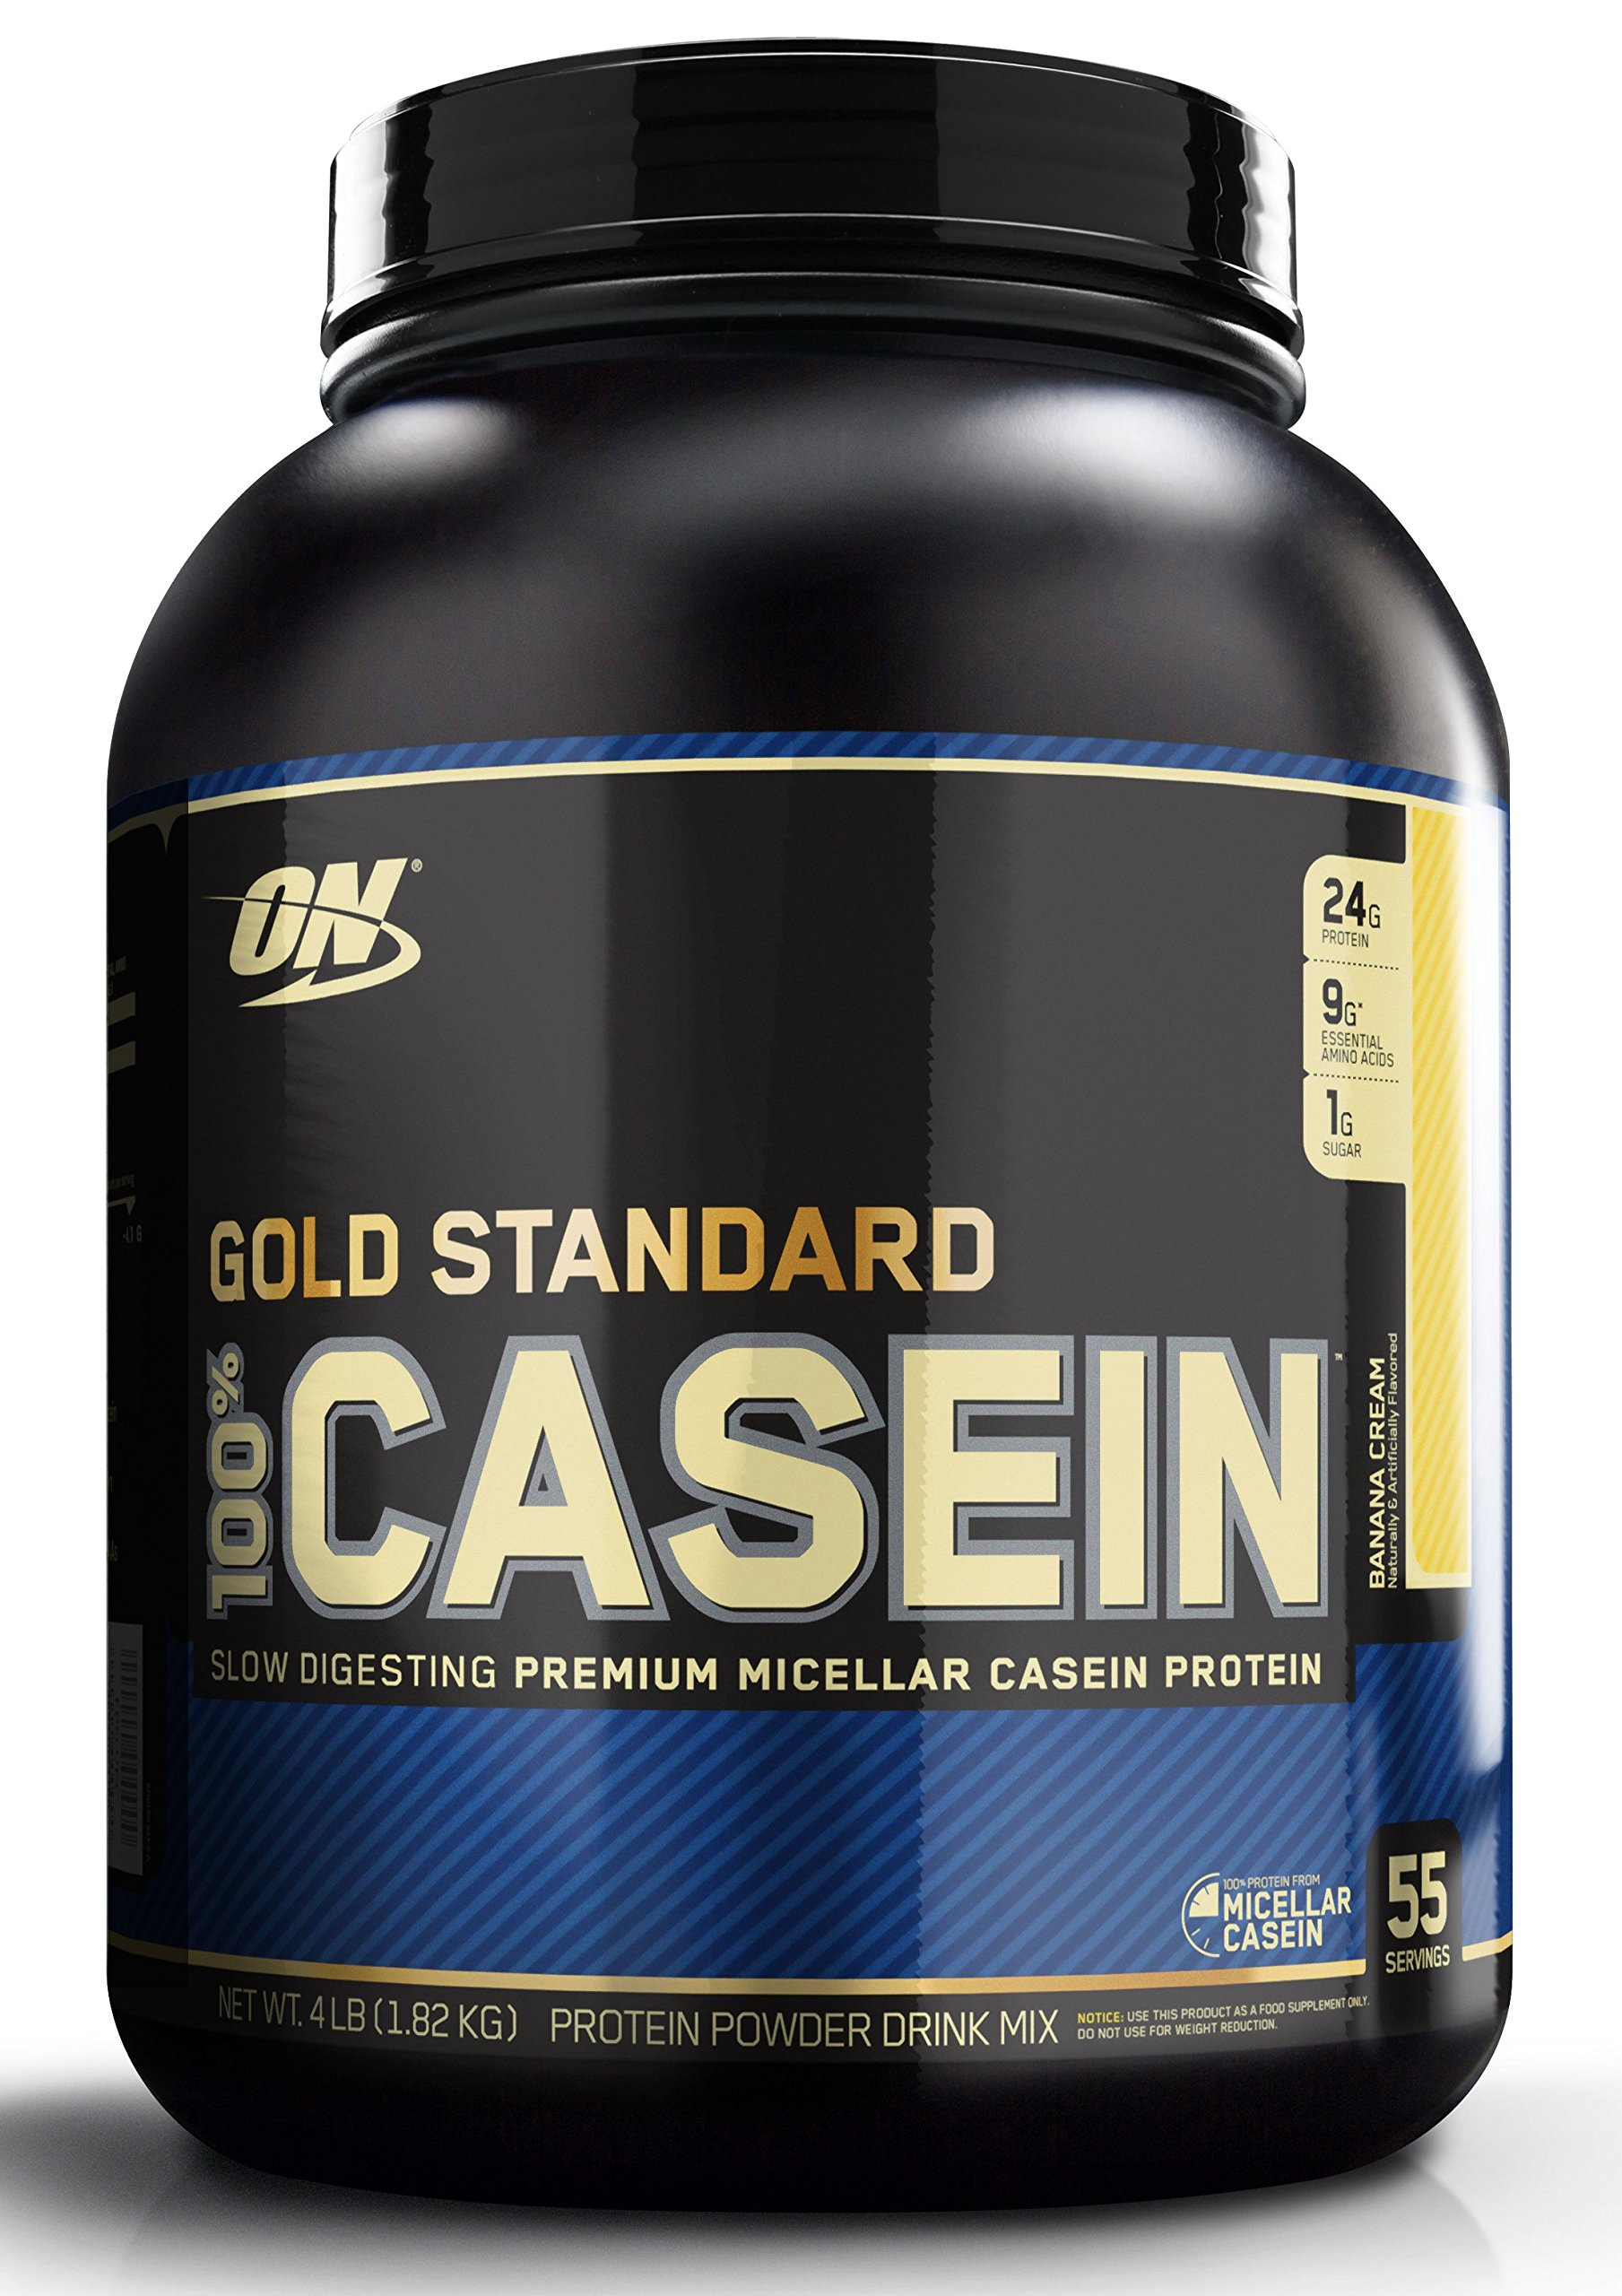 OPTIMUM NUTRITION GOLD STANDARD 100% Micellar Casein Protein Powder, Slow Digesting, Helps Keep You Full, Overnight Muscle Recovery, Chocolate Peanut Butter, 1.81 kg